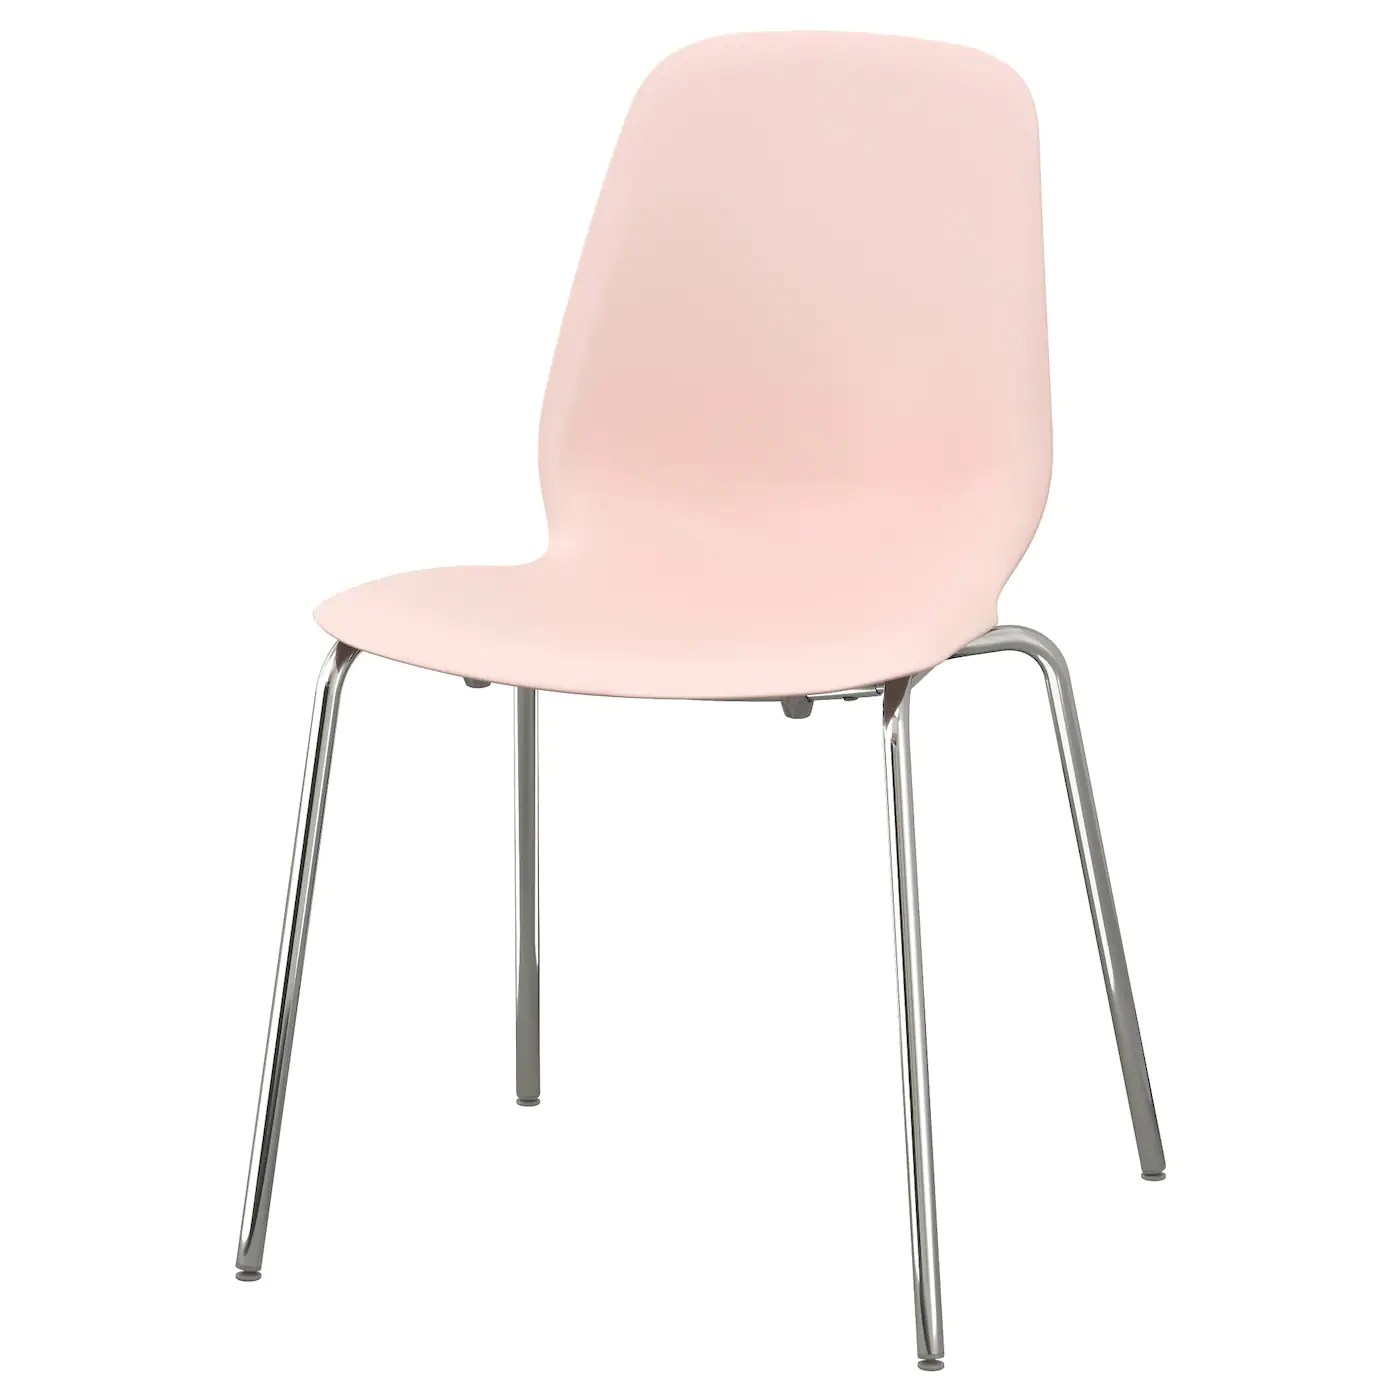 ikea pink desk chair potty chairs for larger toddlers leifarne broringe chrome plated